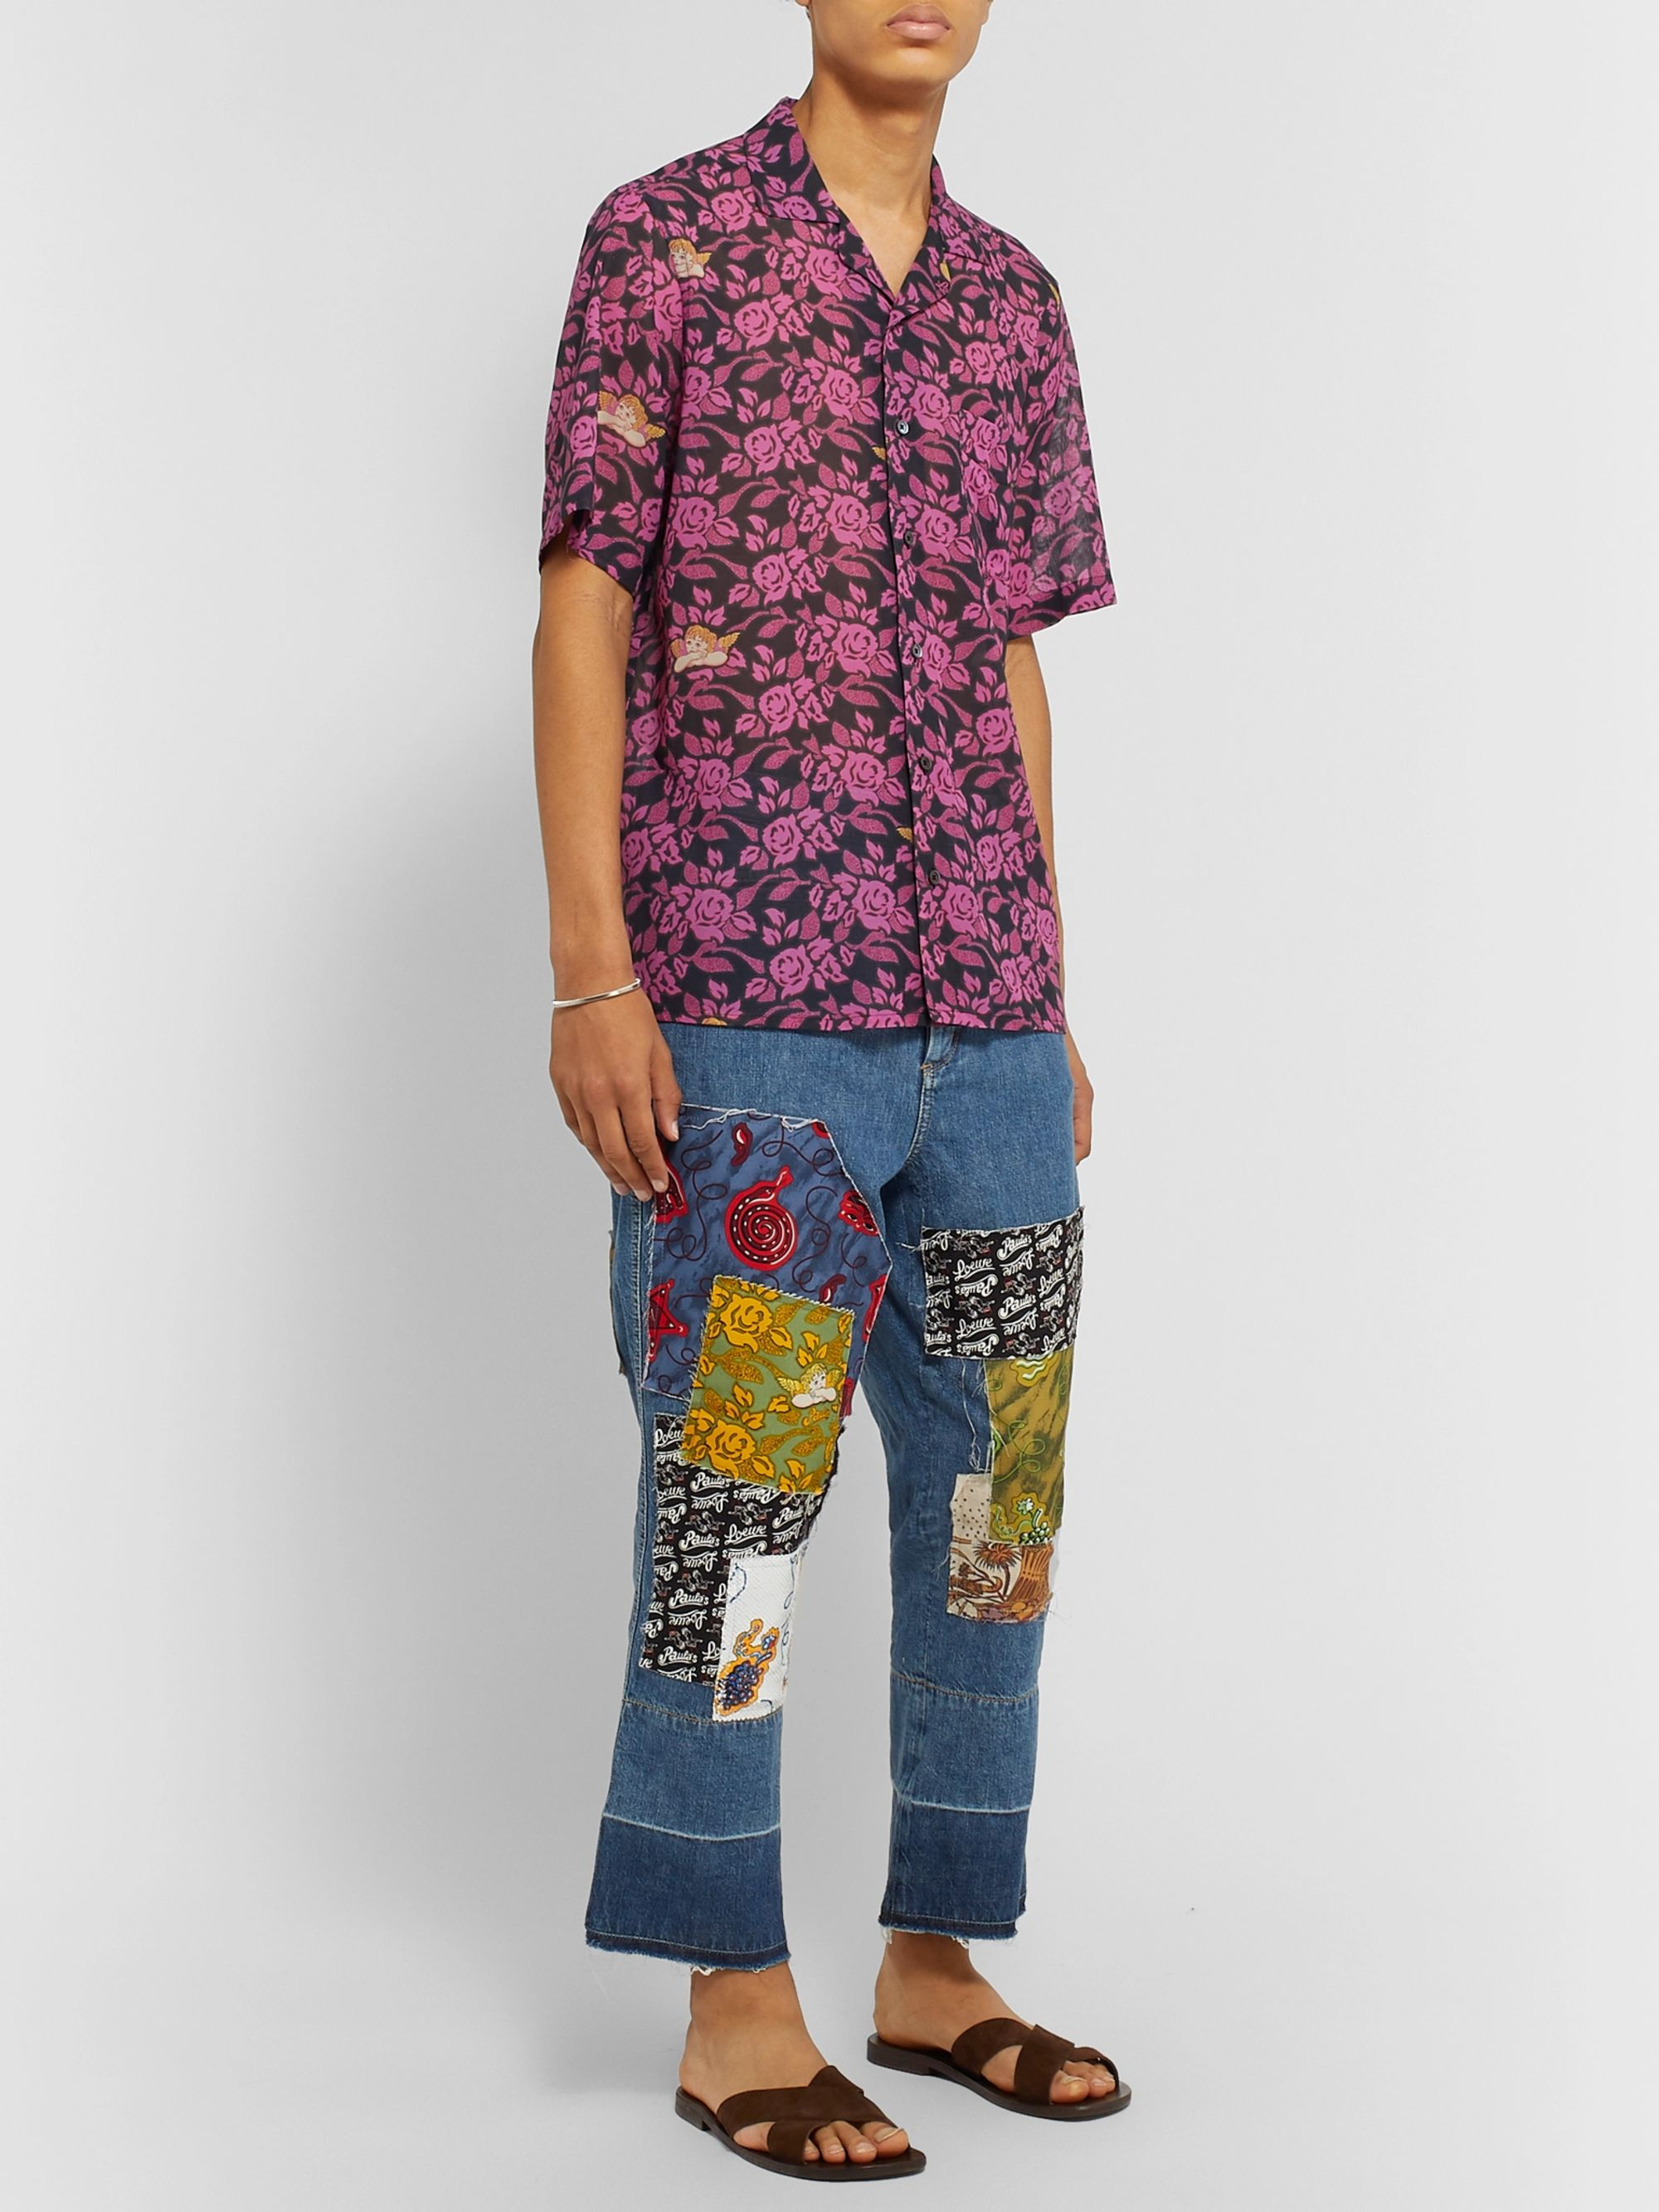 Loewe + Paula's Ibiza Camp-Collar Floral-Print Cotton-Gauze Shirt